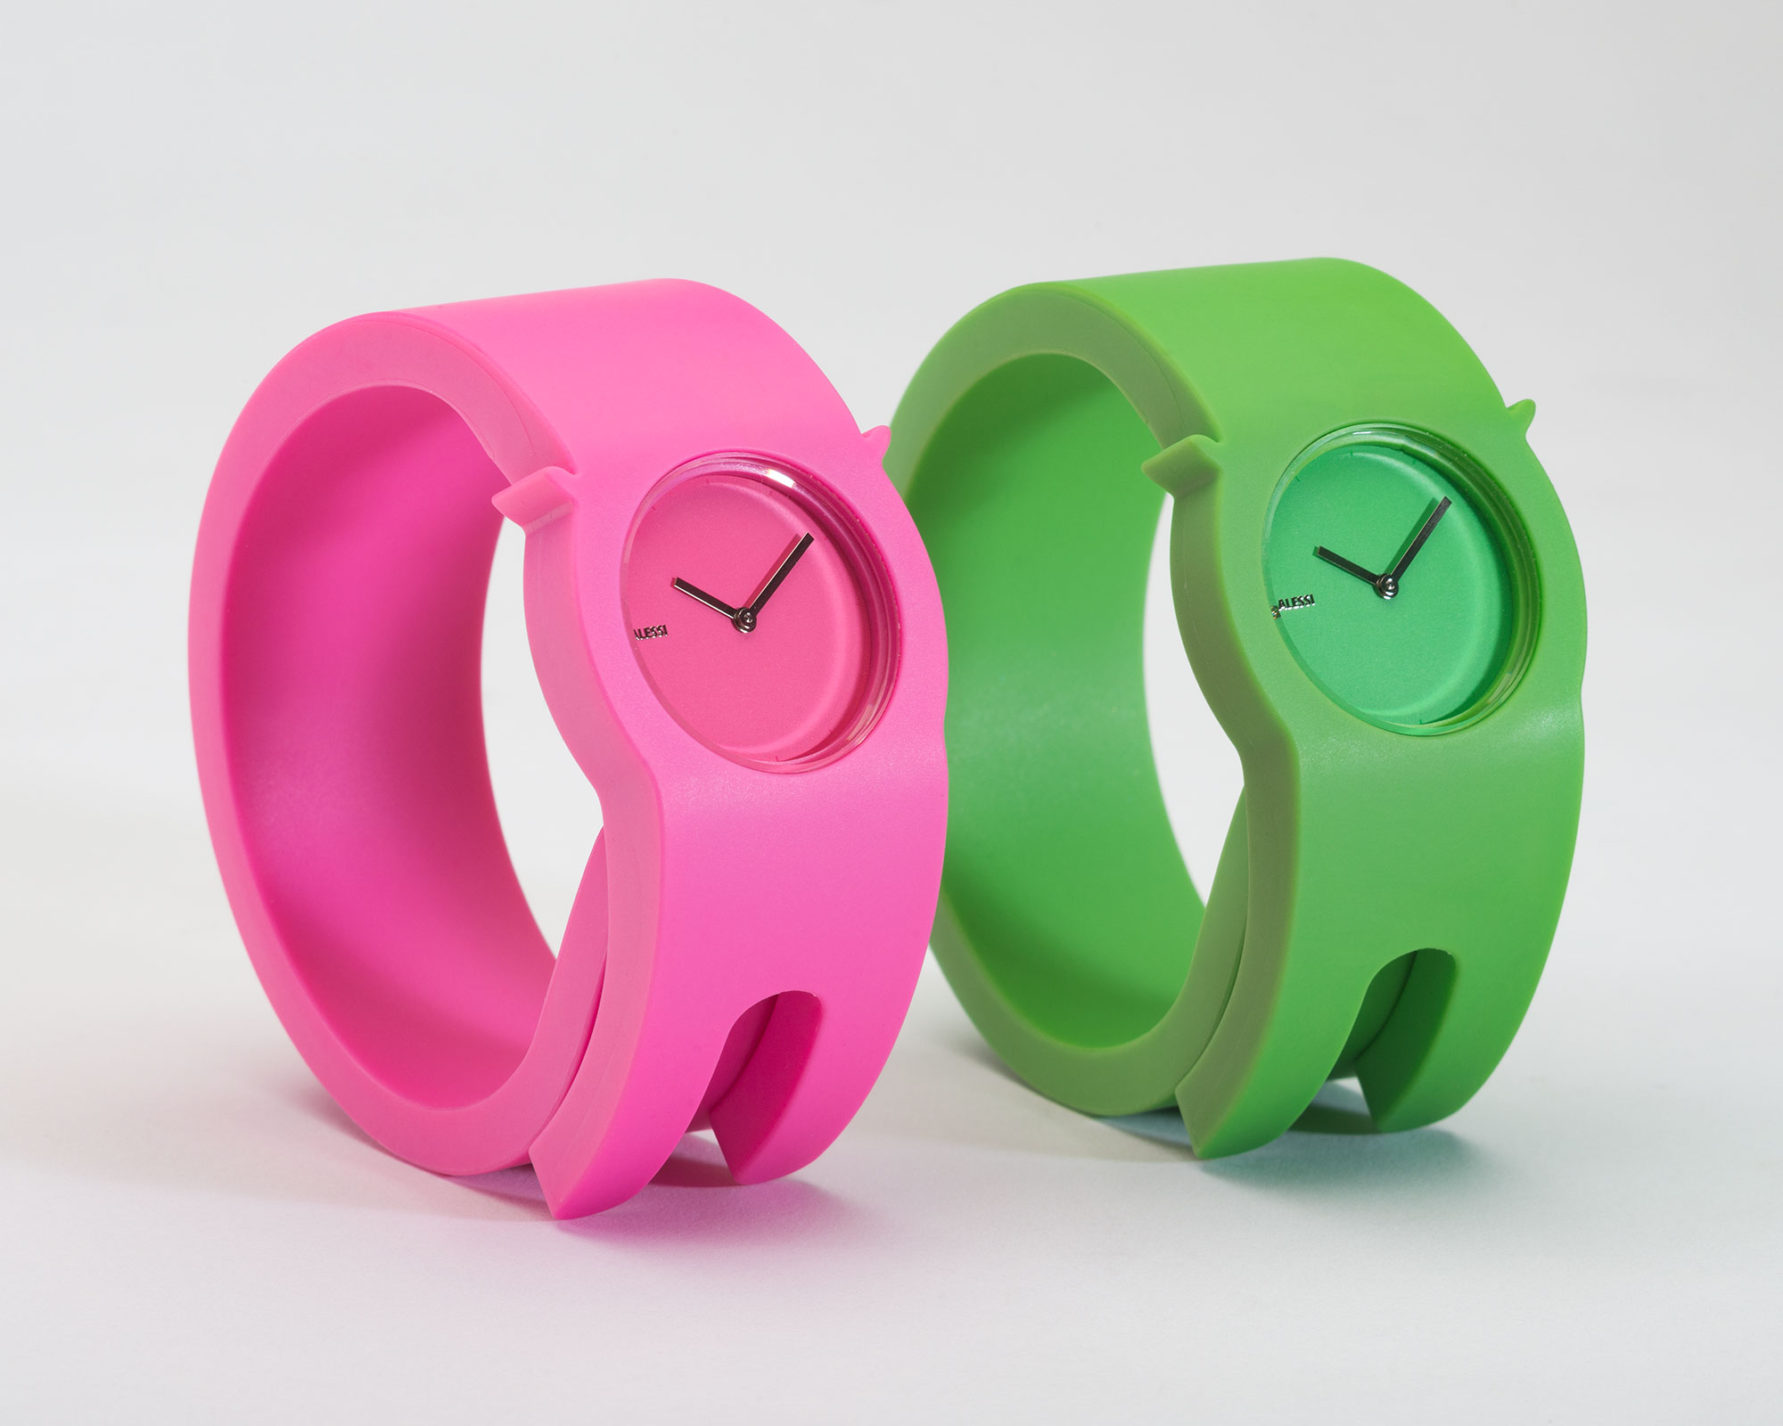 Two plastic wraparound wristwatches, one in pink, one in green, with matching-colored faces and metal hands.